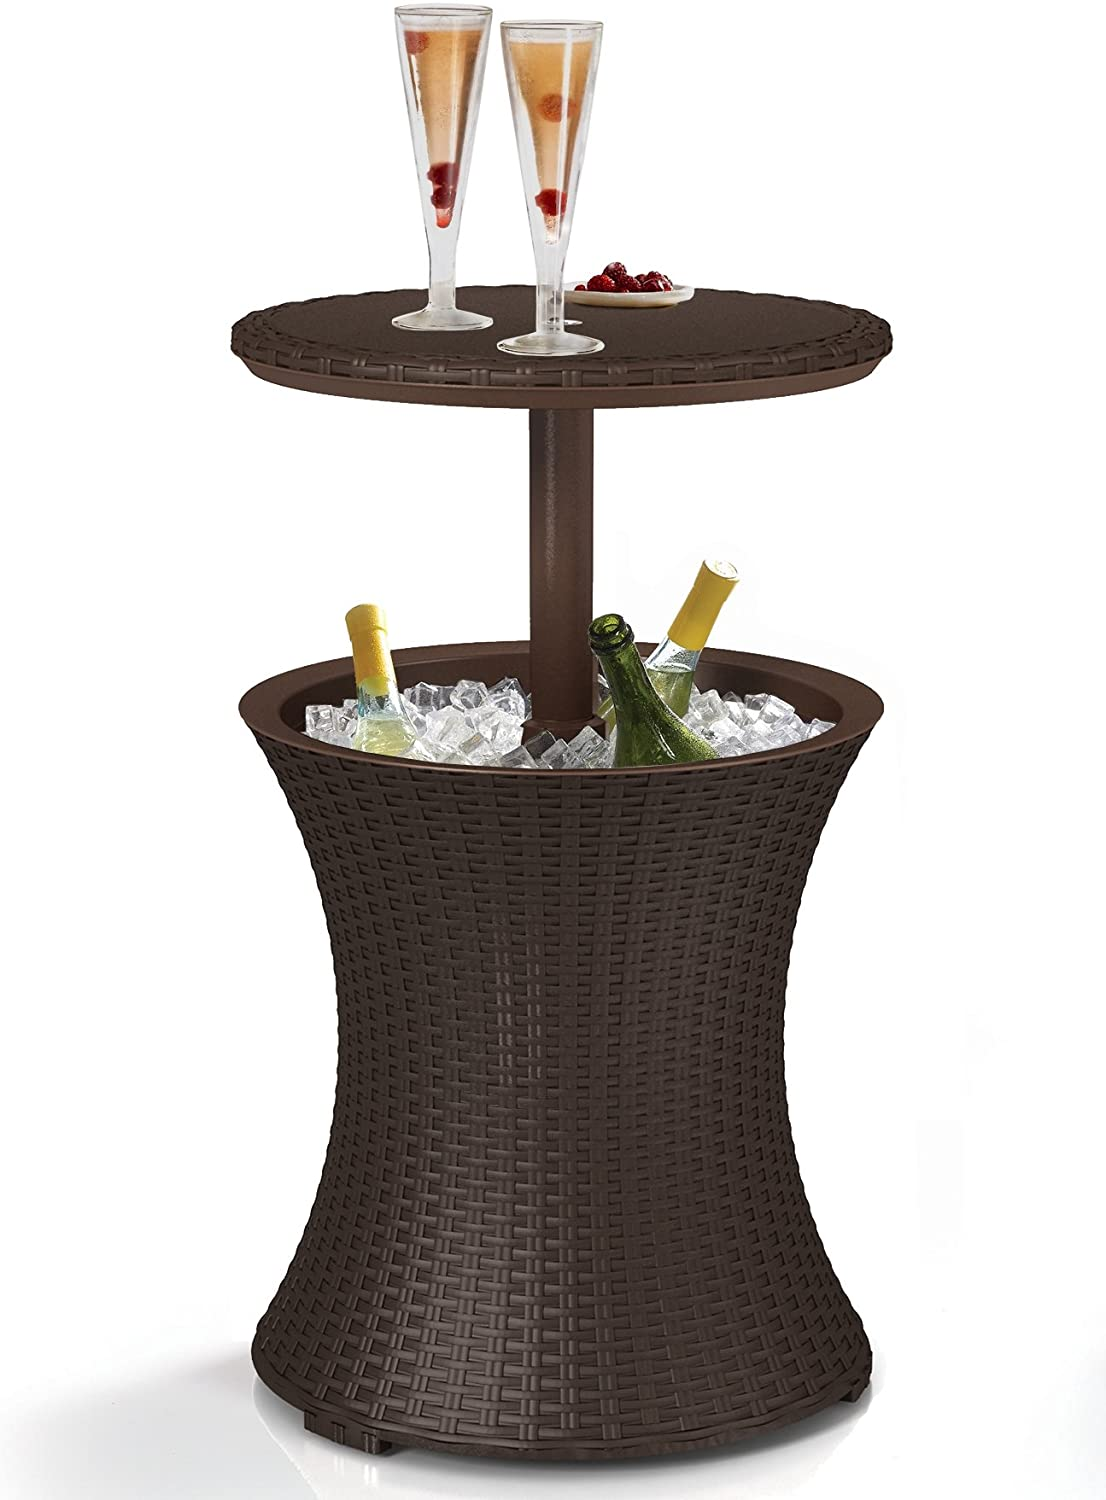 Keter Pacific Cool Bar Outdoor Patio Furniture and Hot Tub Side Table with 7.5 Gallon Beer and Wine Cooler, Brown